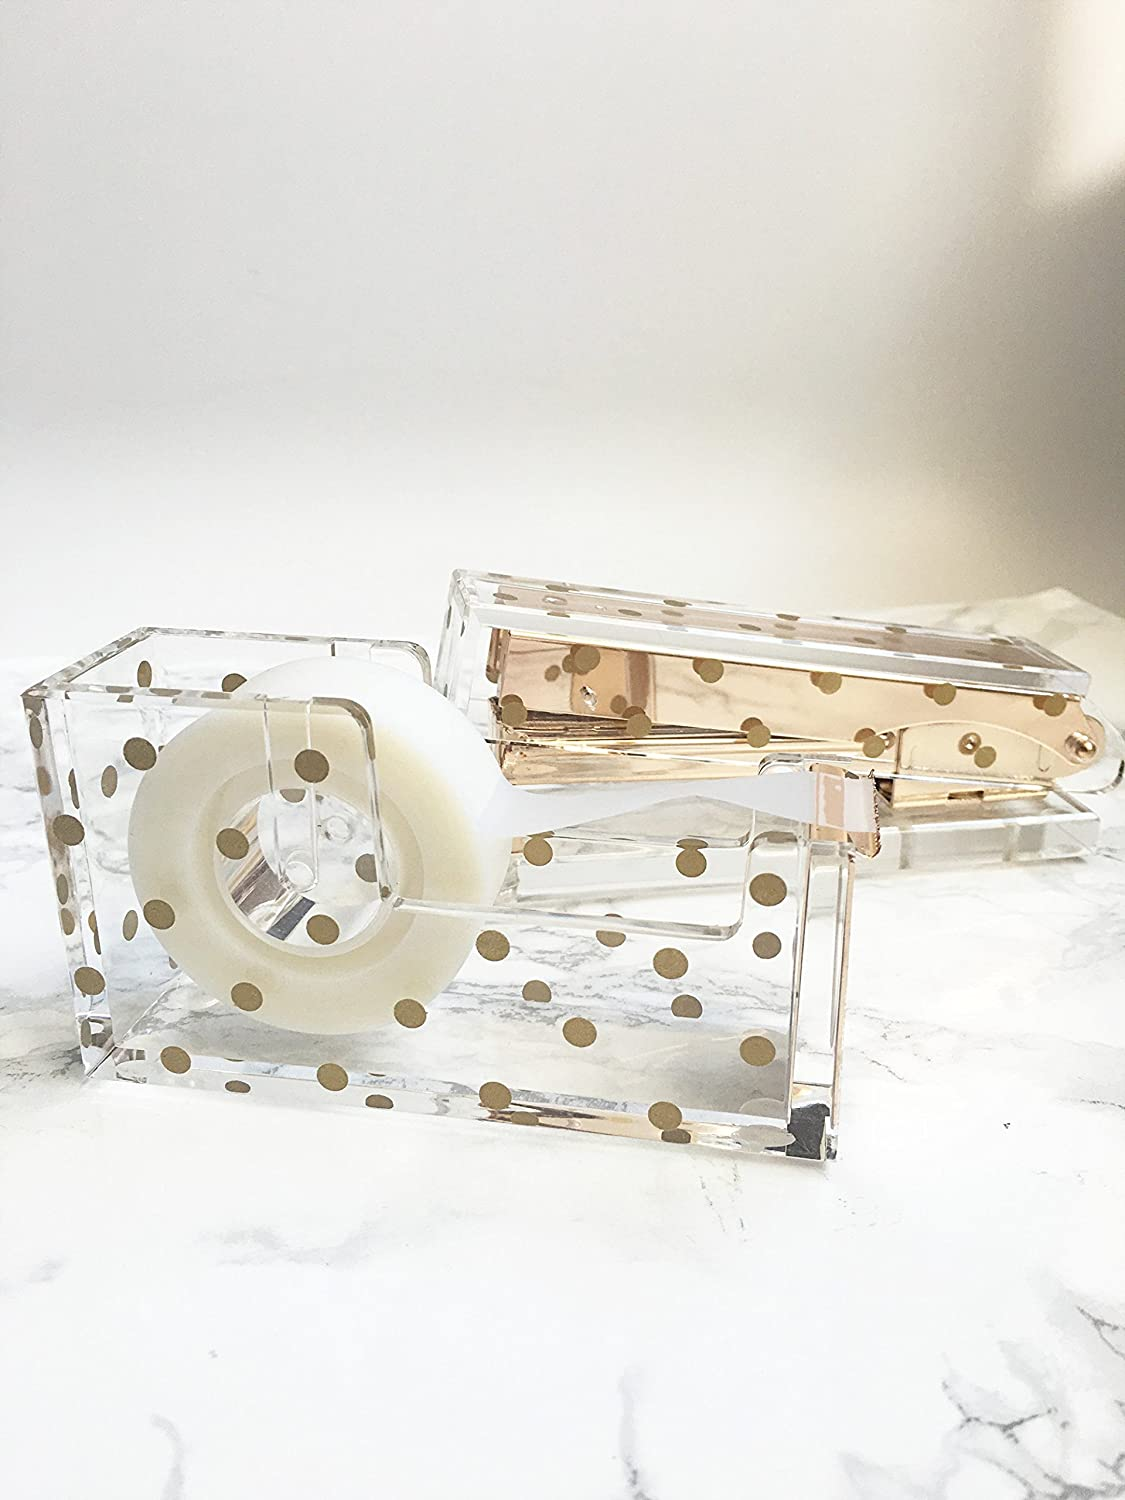 Amazon.com : Acrylic Tape Dispenser | Gold Polka Dot   Chic, Modern Desk  And Office Supplies (Tape Dispenser) : Office Products